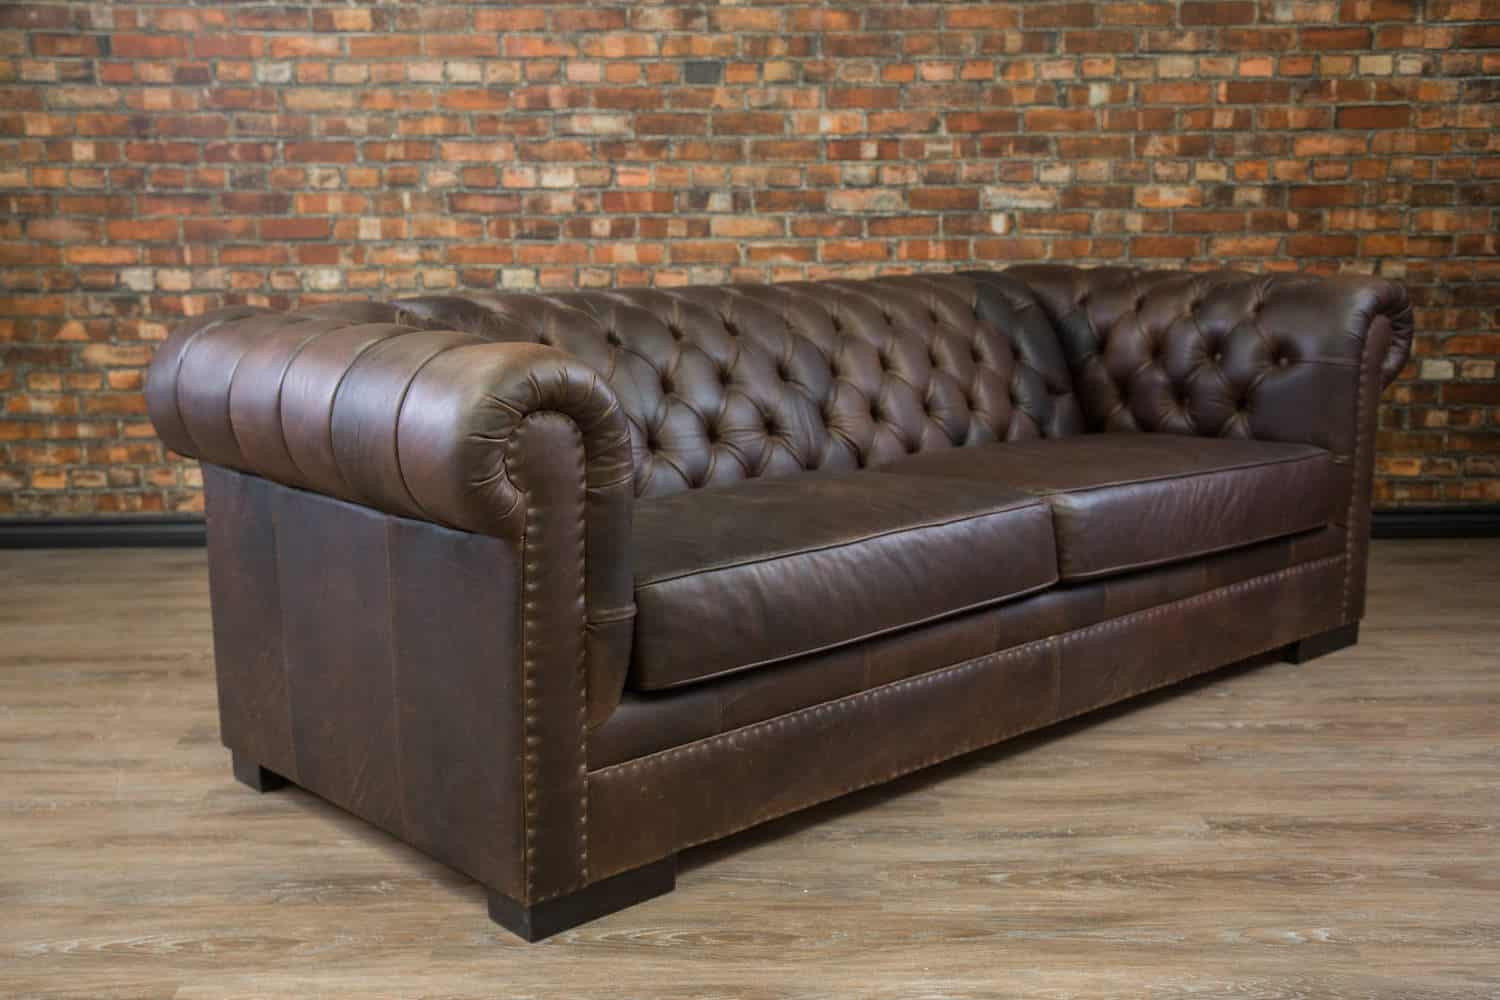 The King Arthur Leather Sofa Canada S Boss Leather Sofas